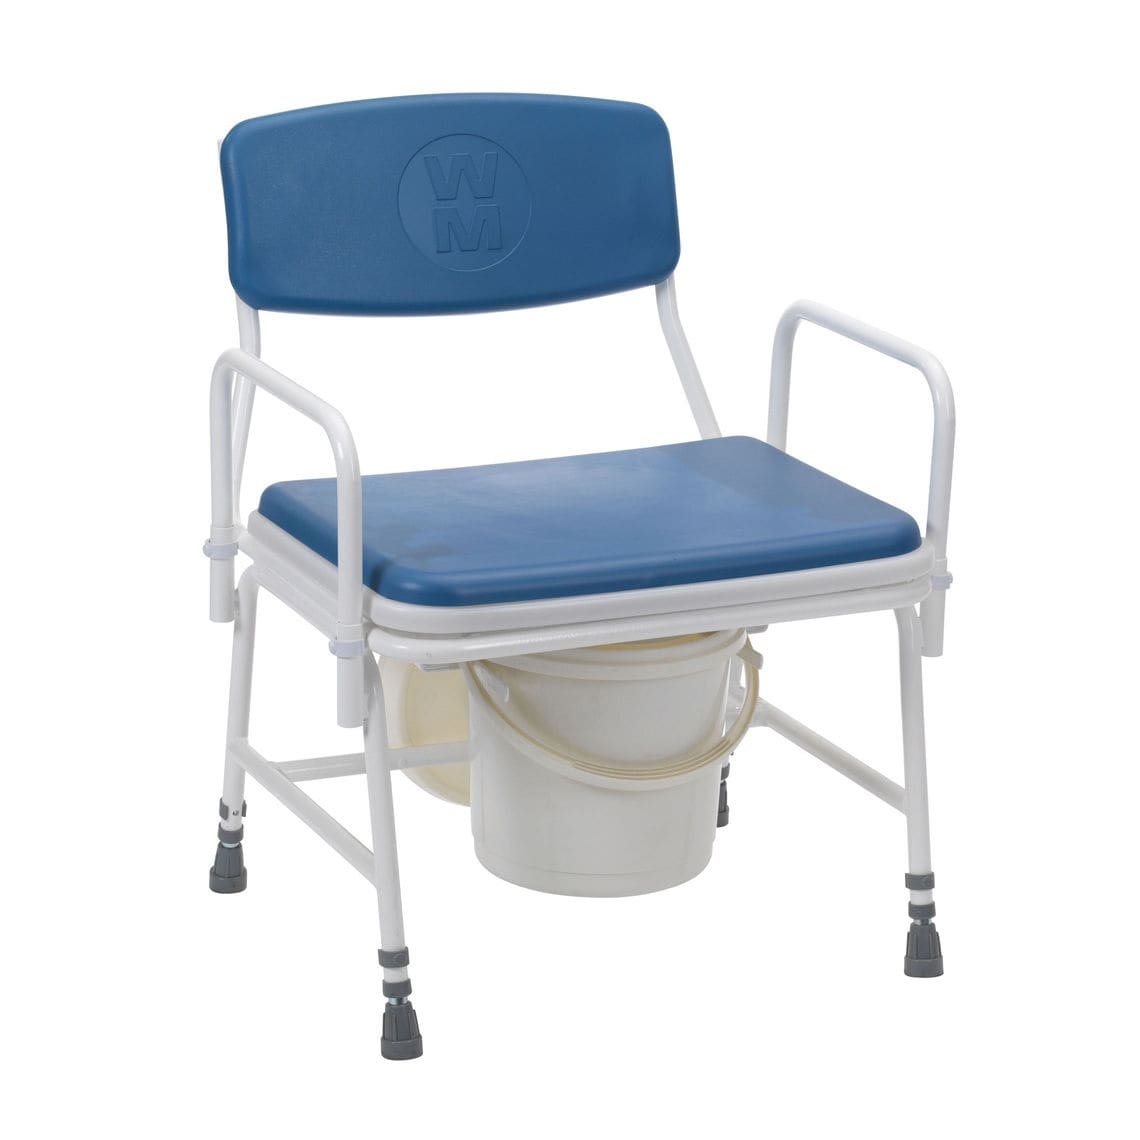 Shower chair / with bucket - Belgrave - Drive Medical Europe